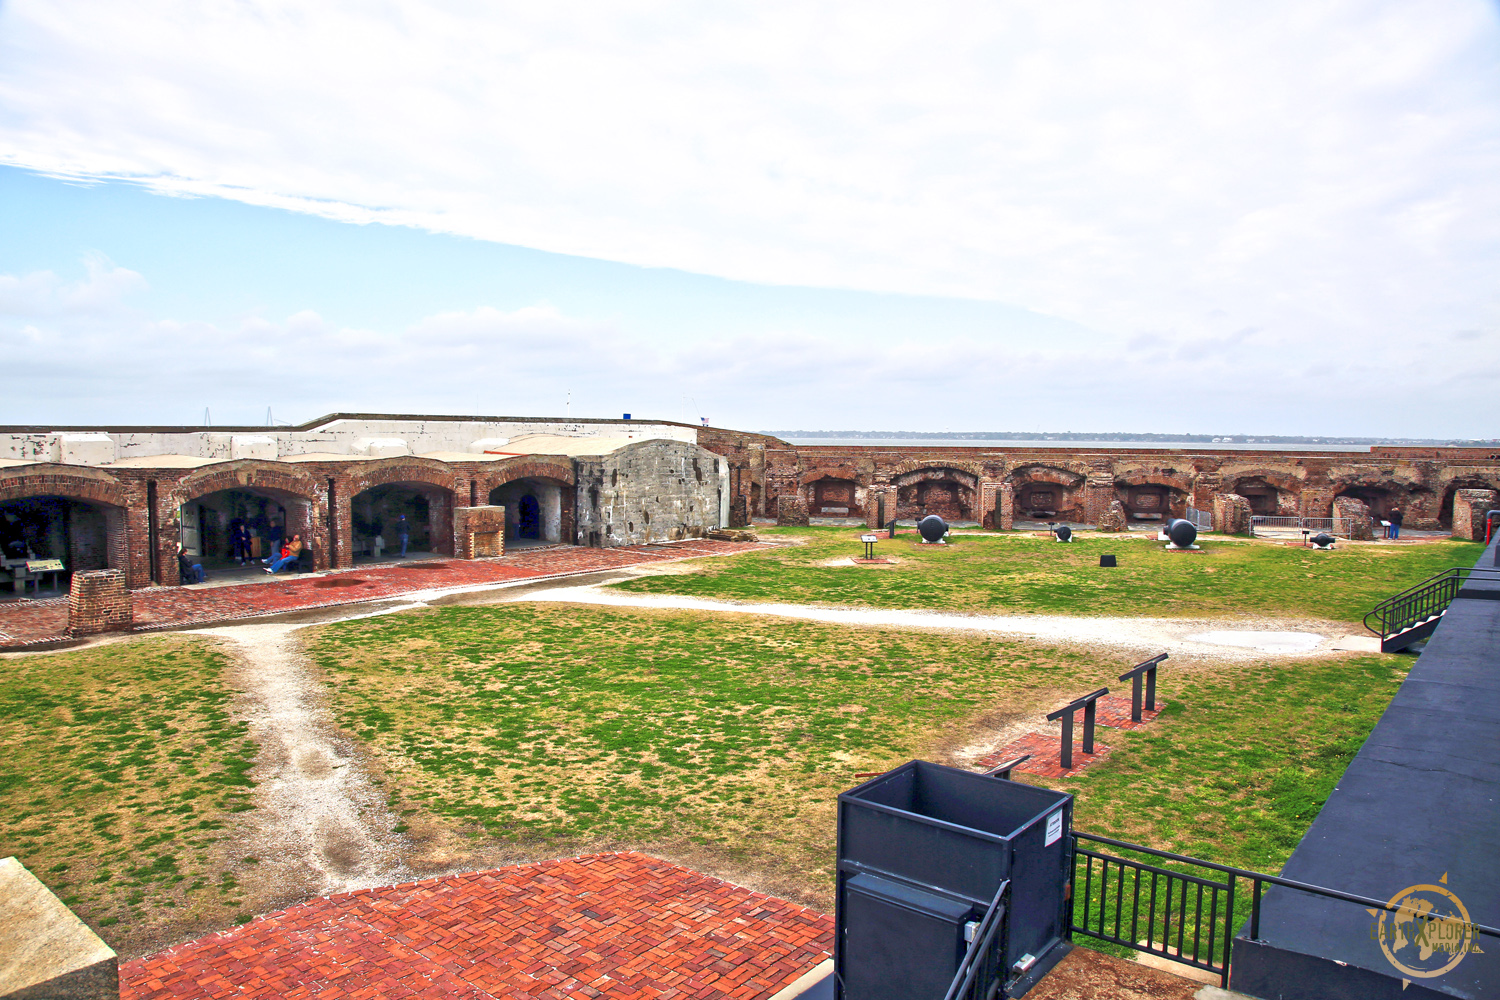 Fort Sumter Charleston South Carolina 4.jpg